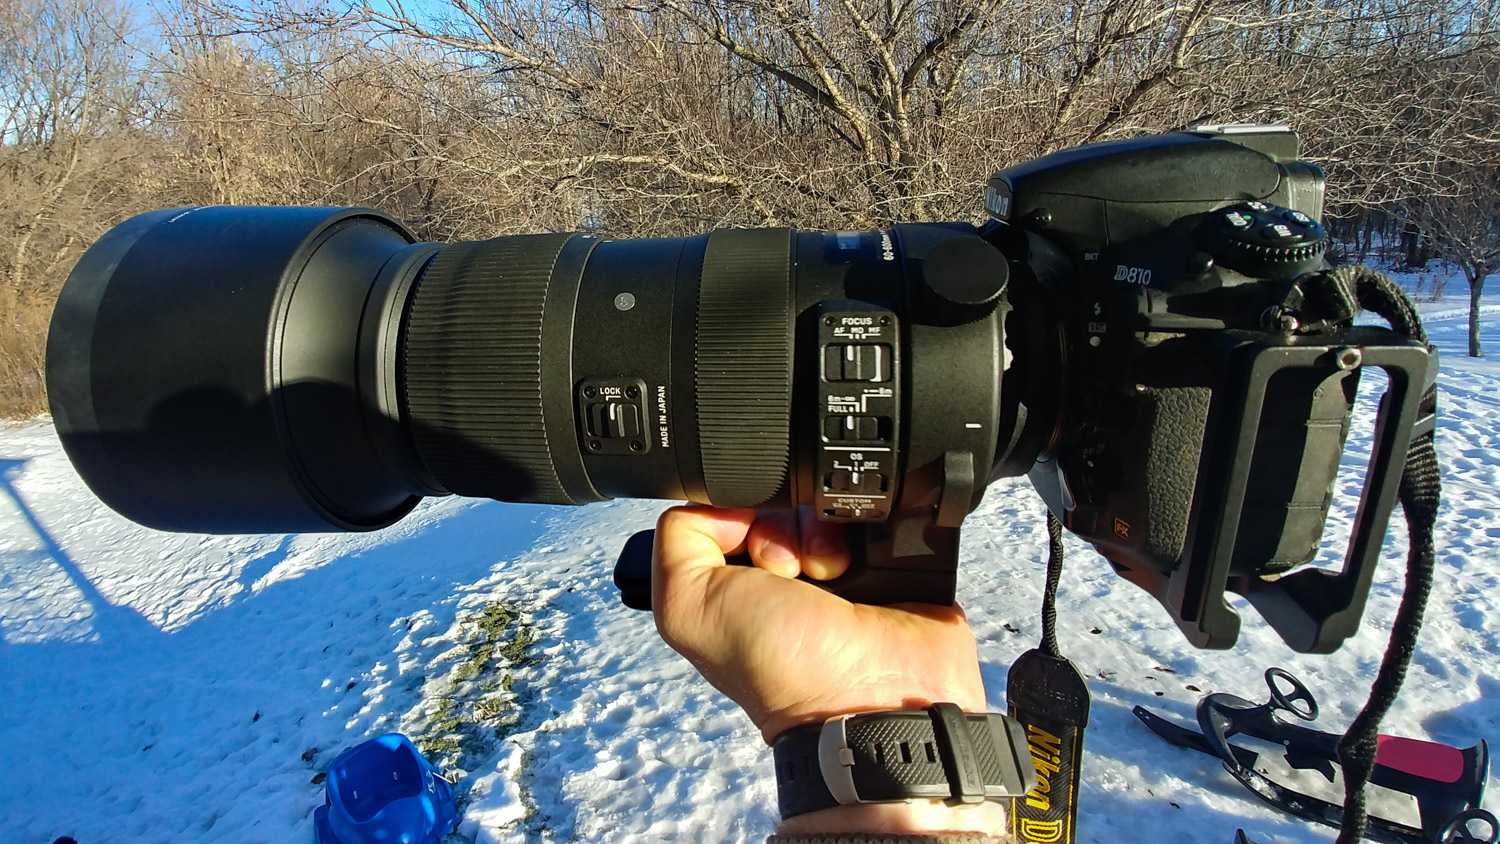 Image: Here, the lens is mounted to a Nikon D810, which I used to test the lens